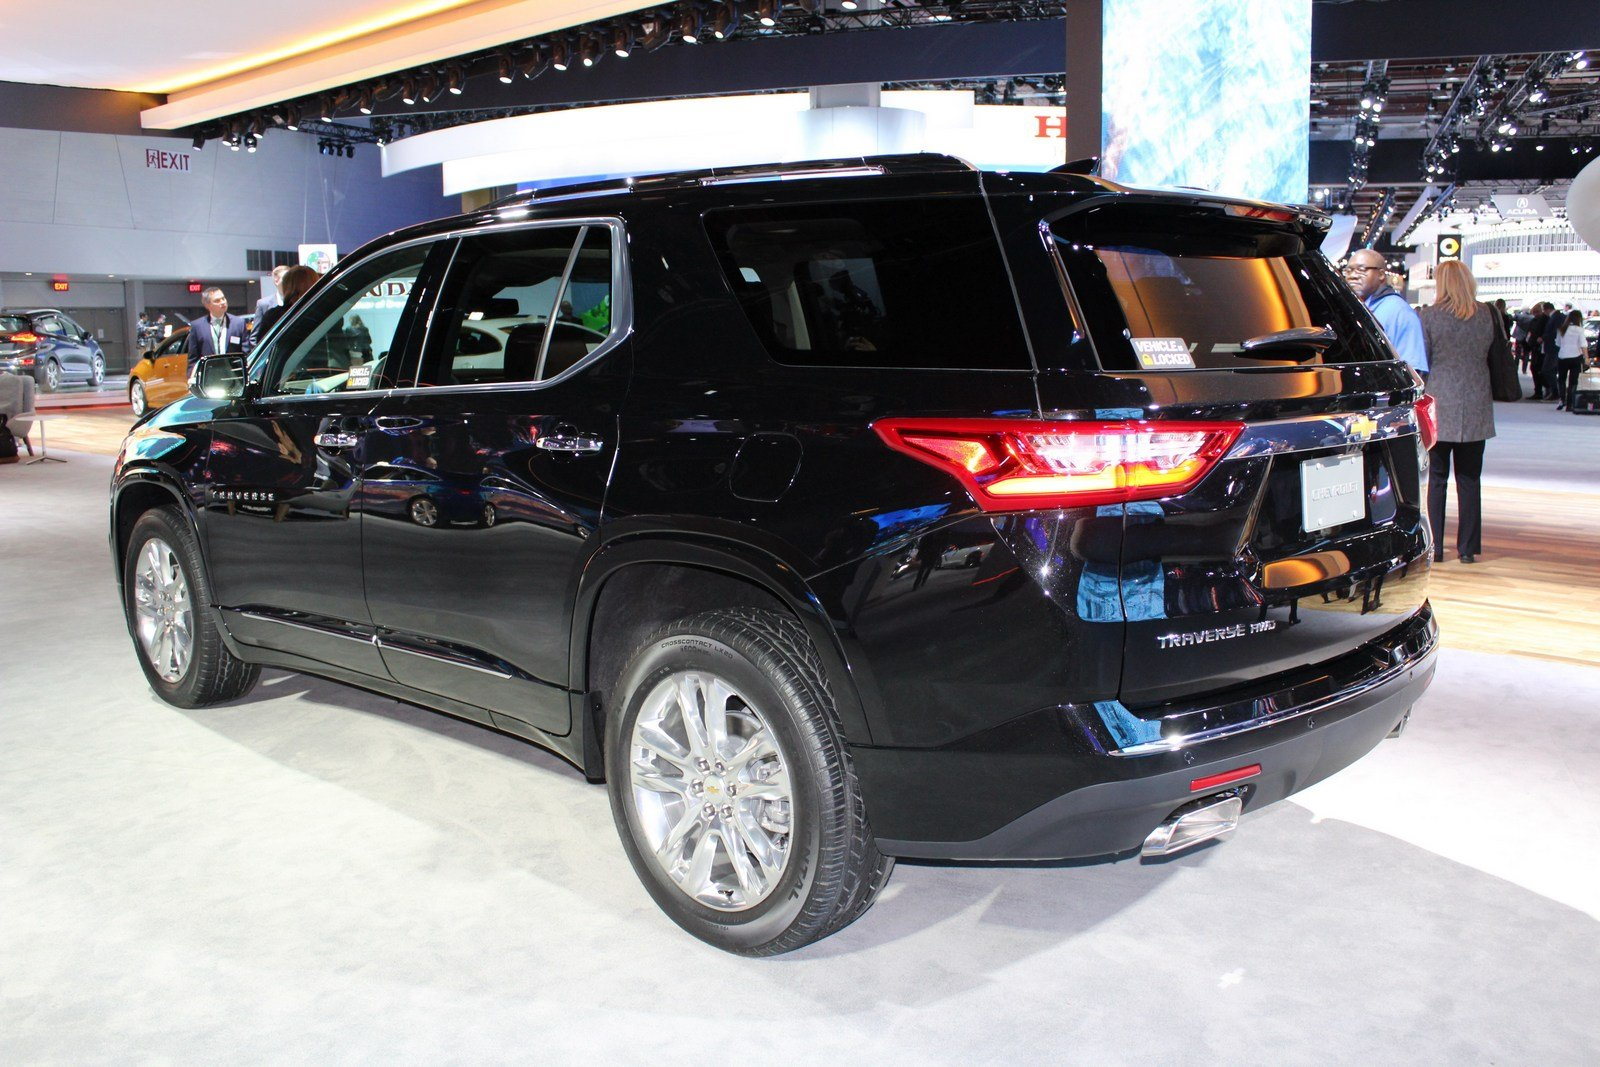 2018 chevrolet traverse picture 701350 car review top speed. Black Bedroom Furniture Sets. Home Design Ideas